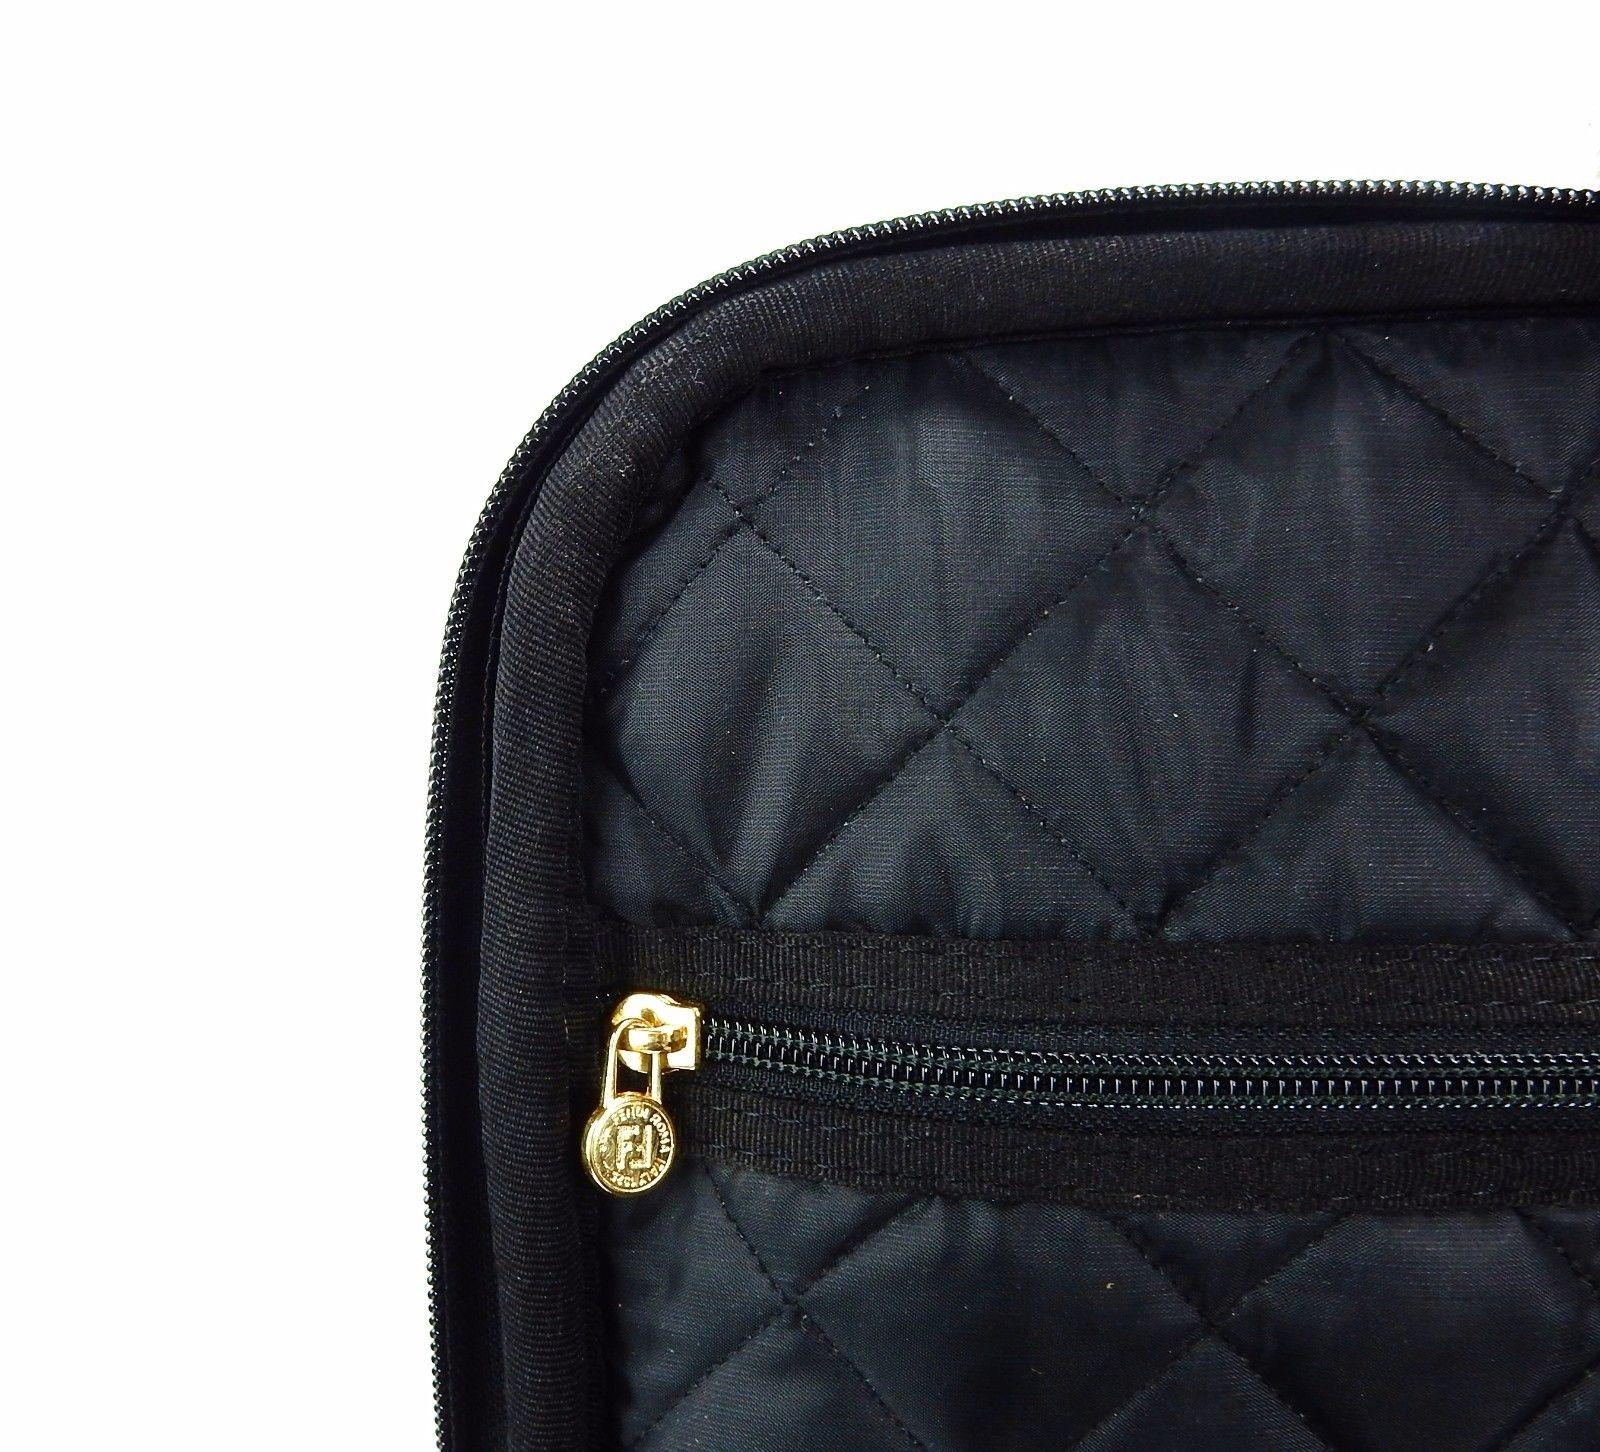 f02b70510f92 ... coupon fendi rare full size rolling suitcase luggage w lock id tag black  canvas weekend travel ...